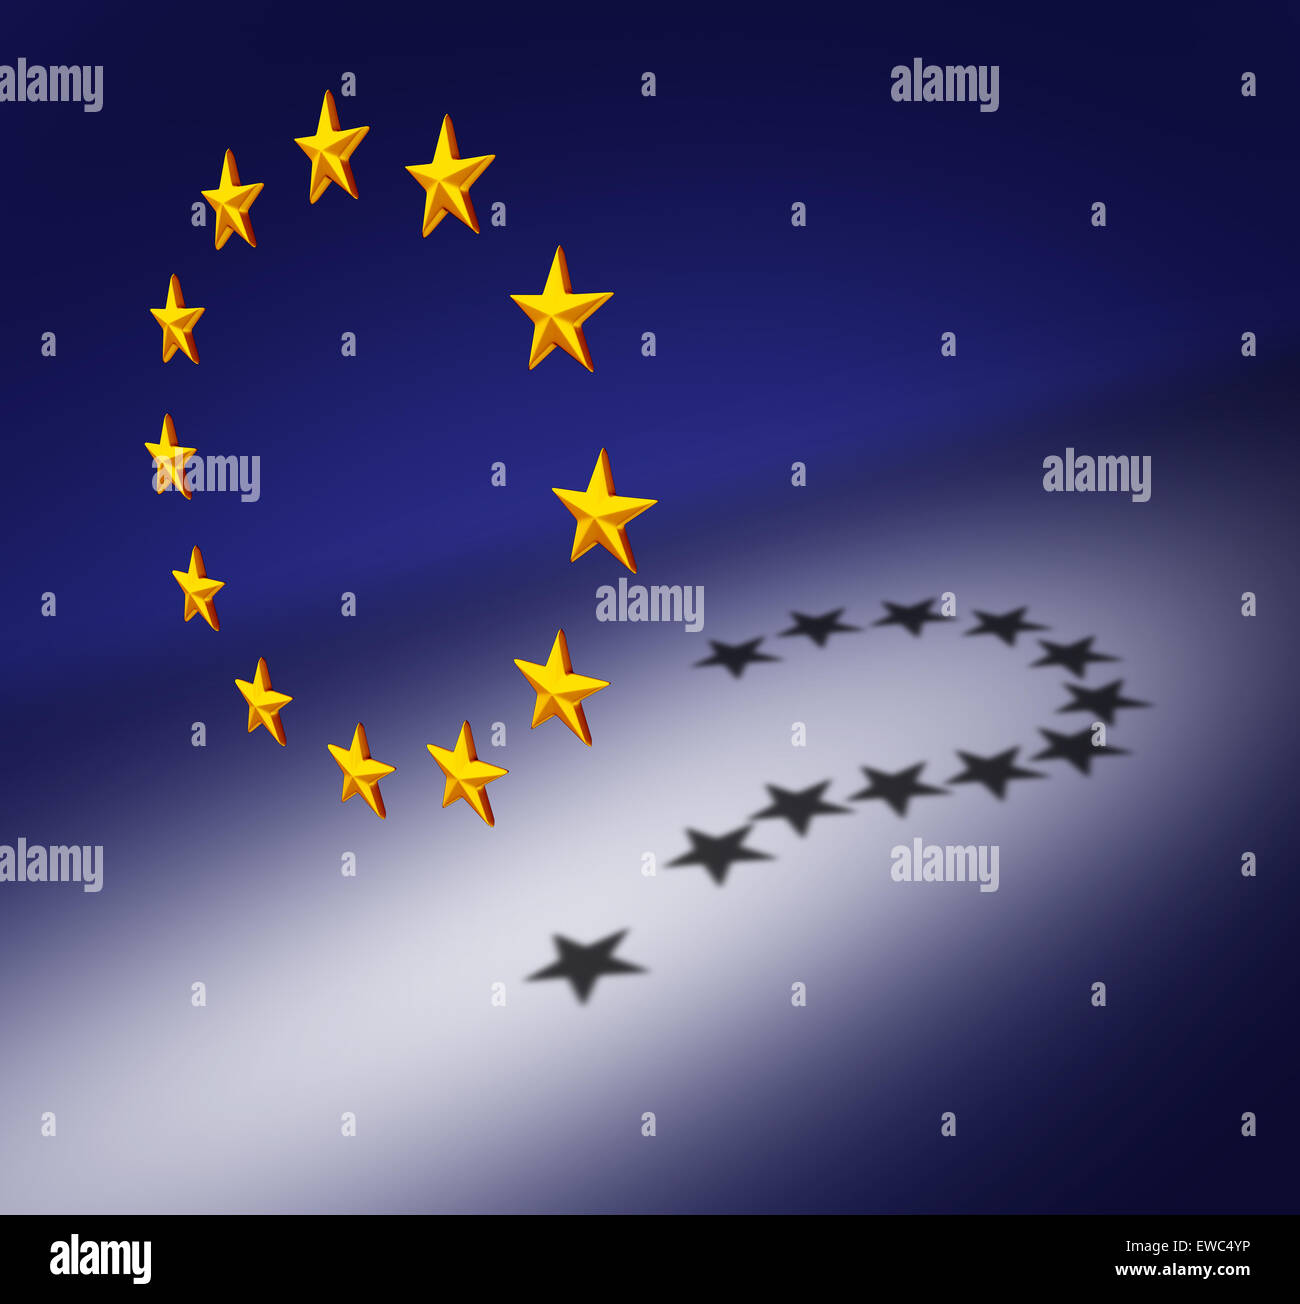 Europe questions or Eurozone crisis concept as a group of three dimensional stars creating a cast shadow of a question - Stock Image